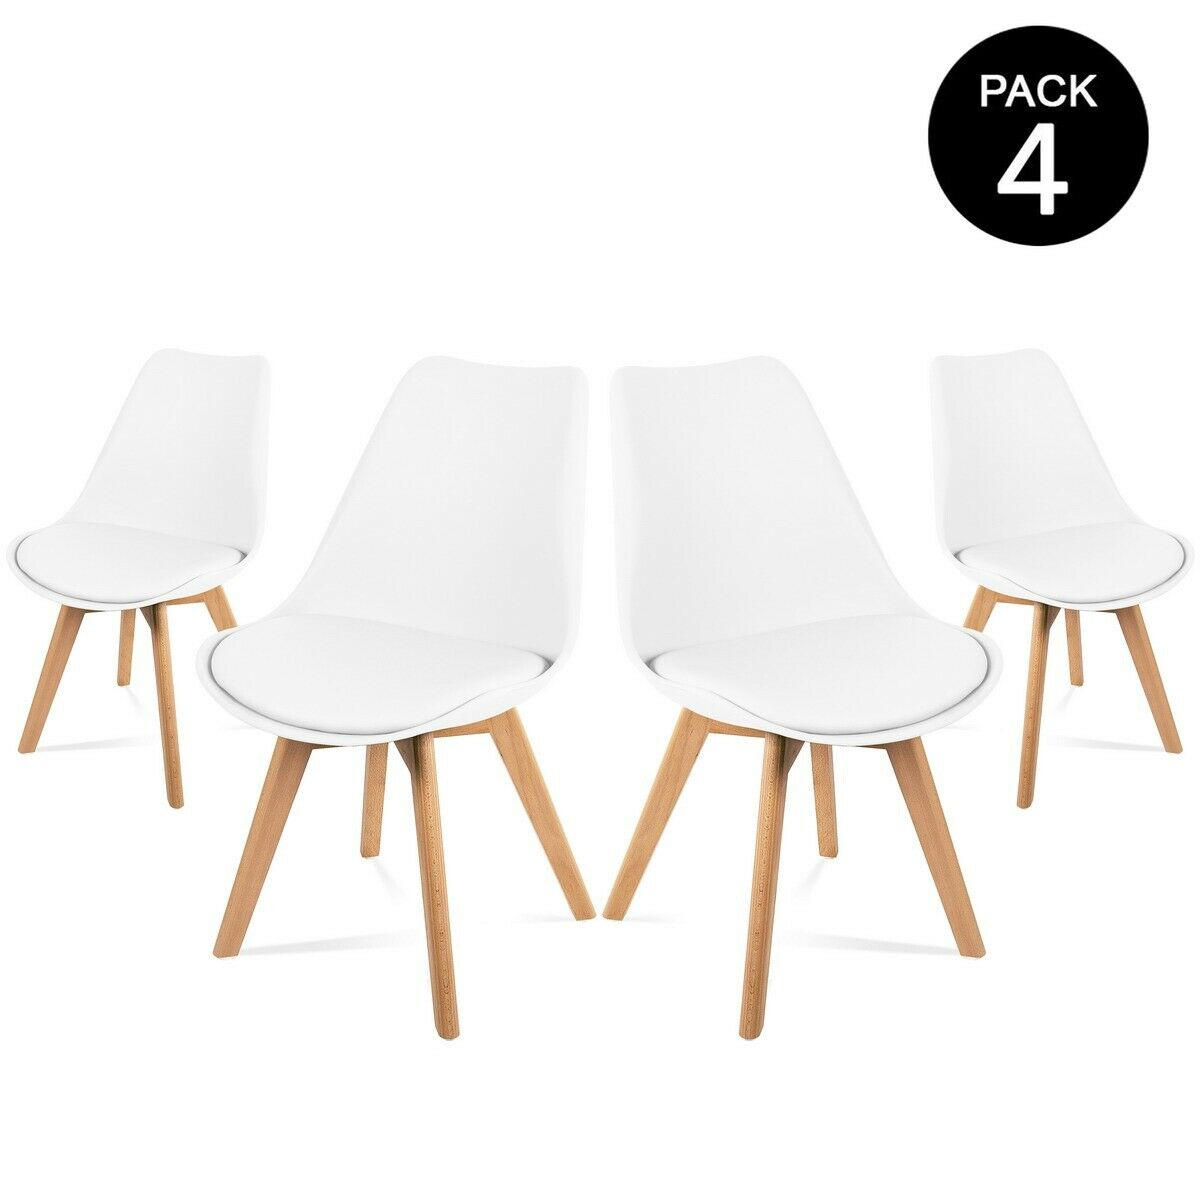 lot de 4 chaises retro blanches rembourr es design nordic tulip mchaus eur 89 99 picclick fr. Black Bedroom Furniture Sets. Home Design Ideas